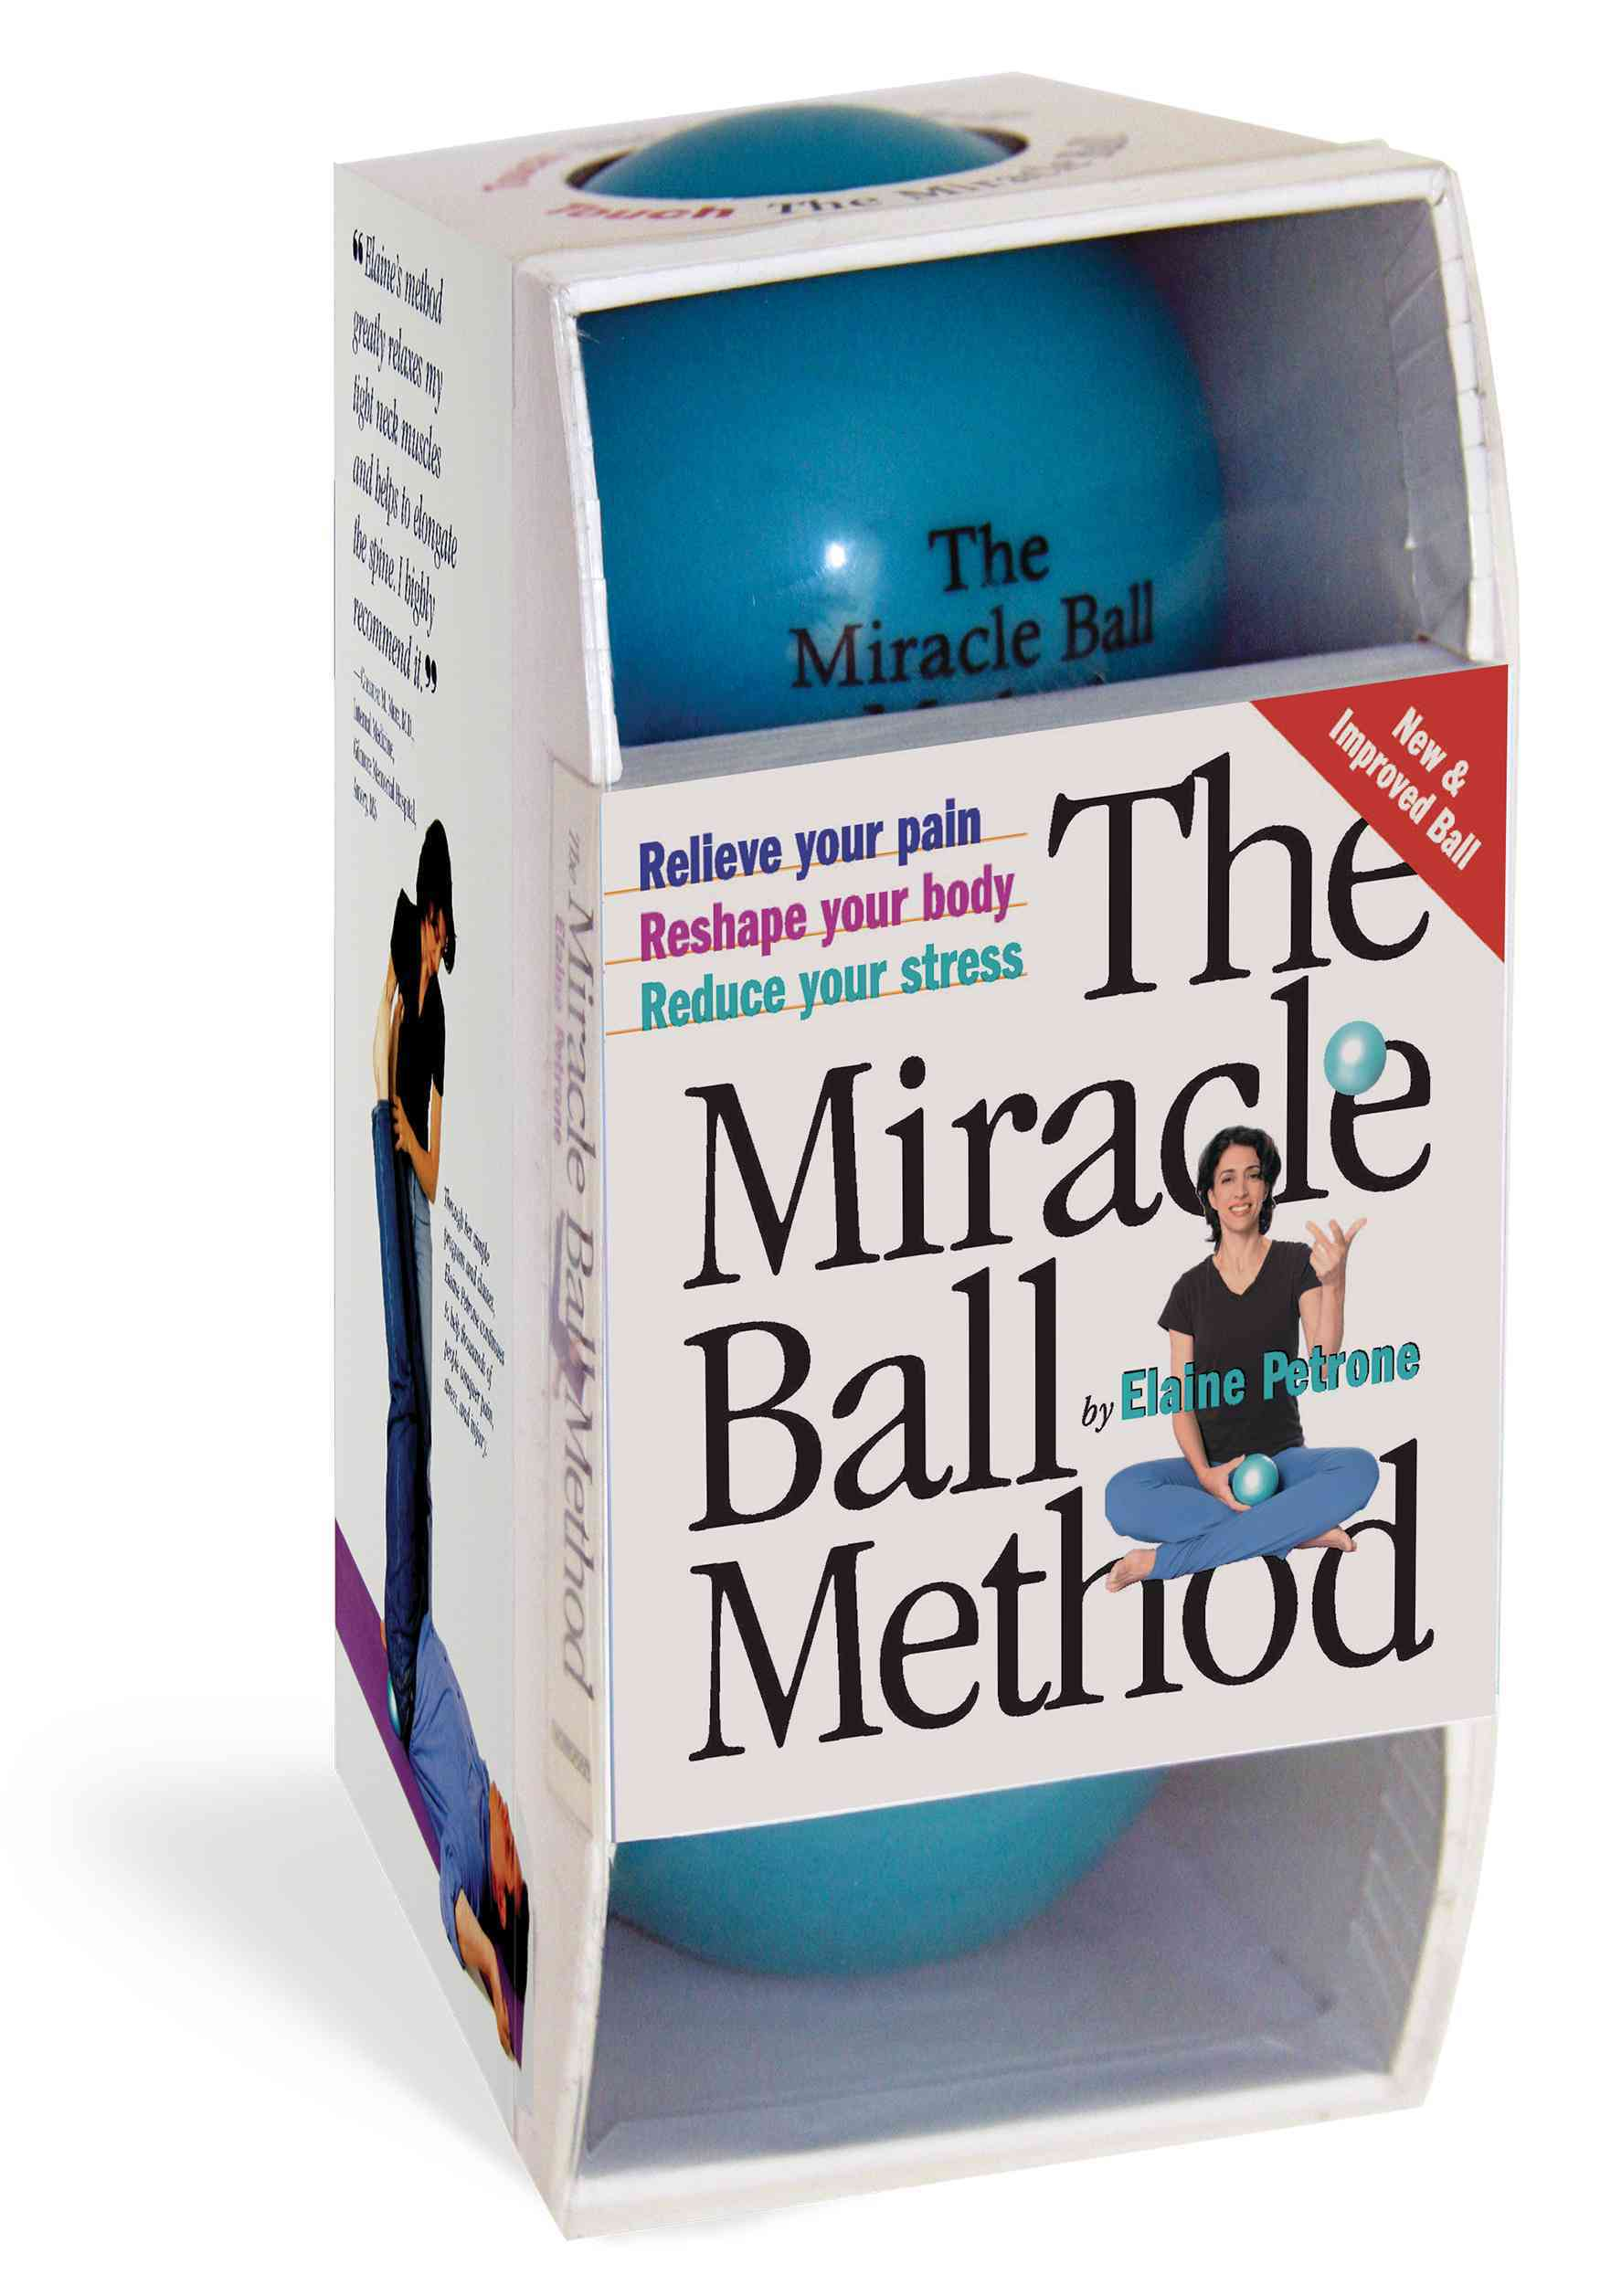 The Miracle Ball Method: Relieve Your Pain, Reshape Your Body, Reduce Your Stress (Paperback)